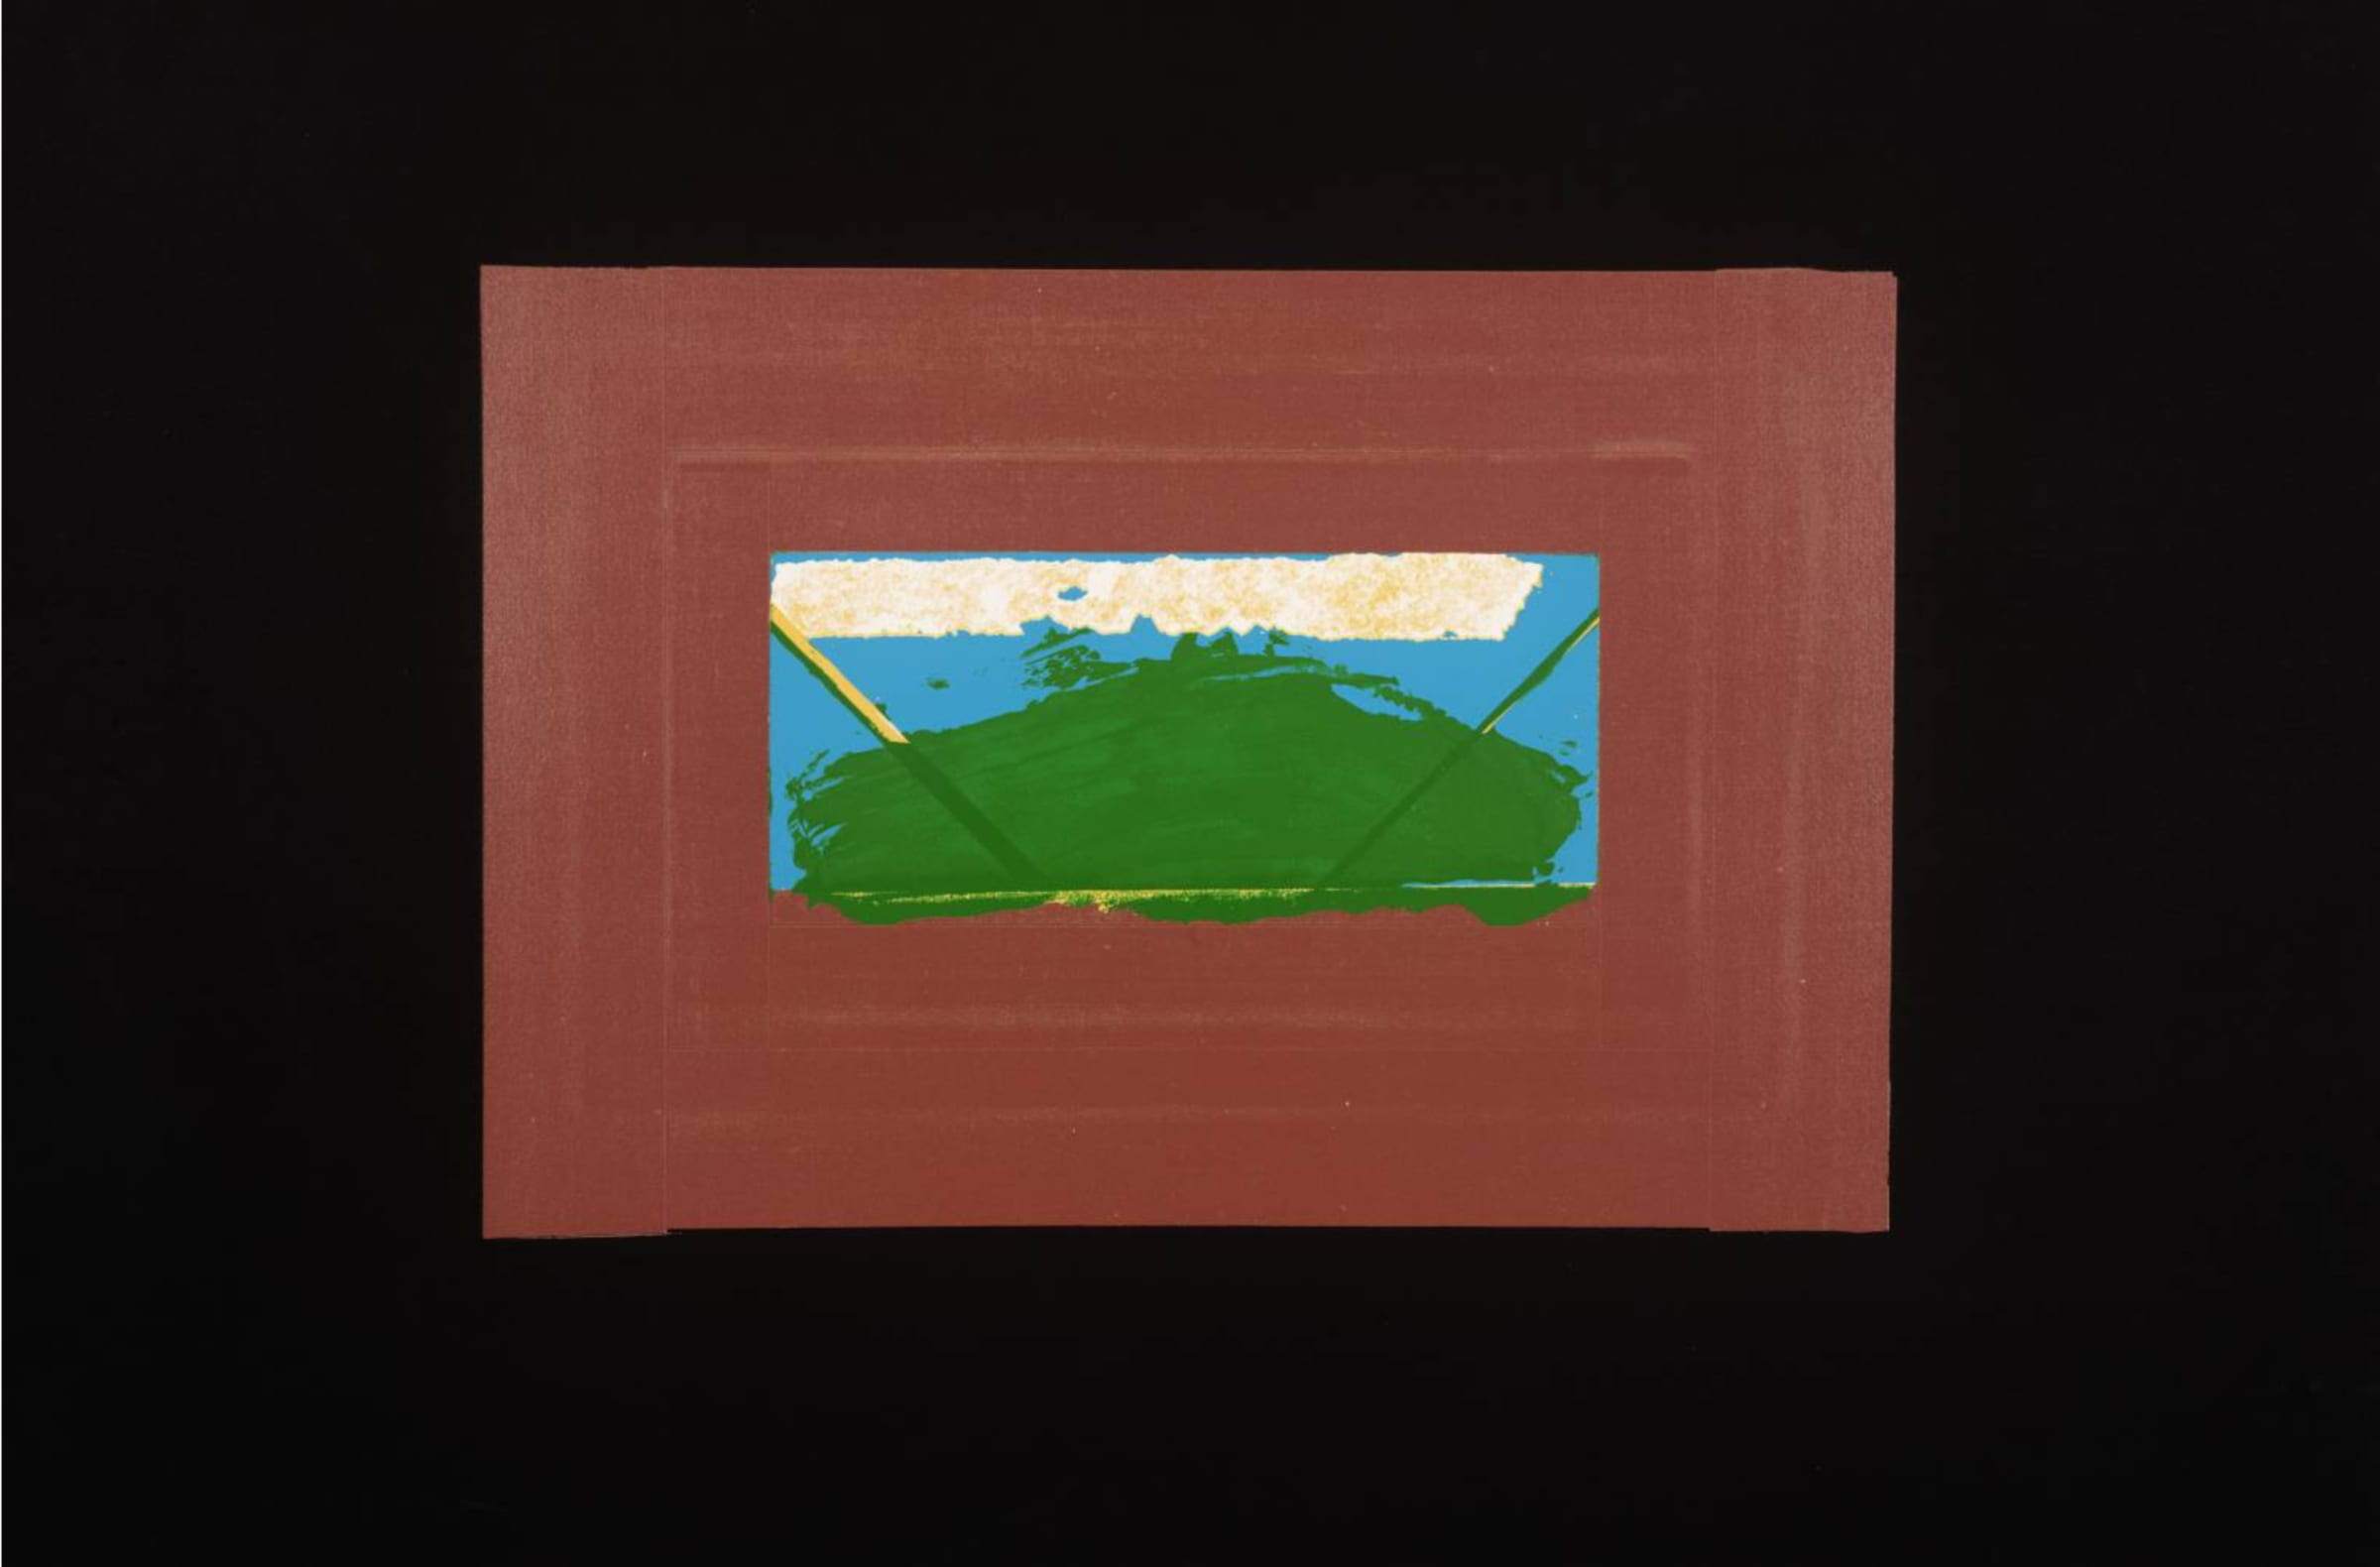 "<span class=""link fancybox-details-link""><a href=""/artists/163-howard-hodgkin-ch-cbe/works/4063-howard-hodgkin-ch-cbe-indian-view-g-1971/"">View Detail Page</a></span><div class=""artist""><strong>Howard Hodgkin CH CBE</strong></div> 1932 – 2017 <div class=""title""><em>Indian View G</em>, 1971</div> <div class=""signed_and_dated"">signed and dated in pencil</div> <div class=""medium"">silkscreen print</div> <div class=""dimensions"">image size: 57 x 77 cm<br /> frame size: 63 x 82 cm</div> <div class=""edition_details"">Edition 5 of 75</div><div class=""copyright_line"">@ The Estate of Howard Hodgkin</div>"